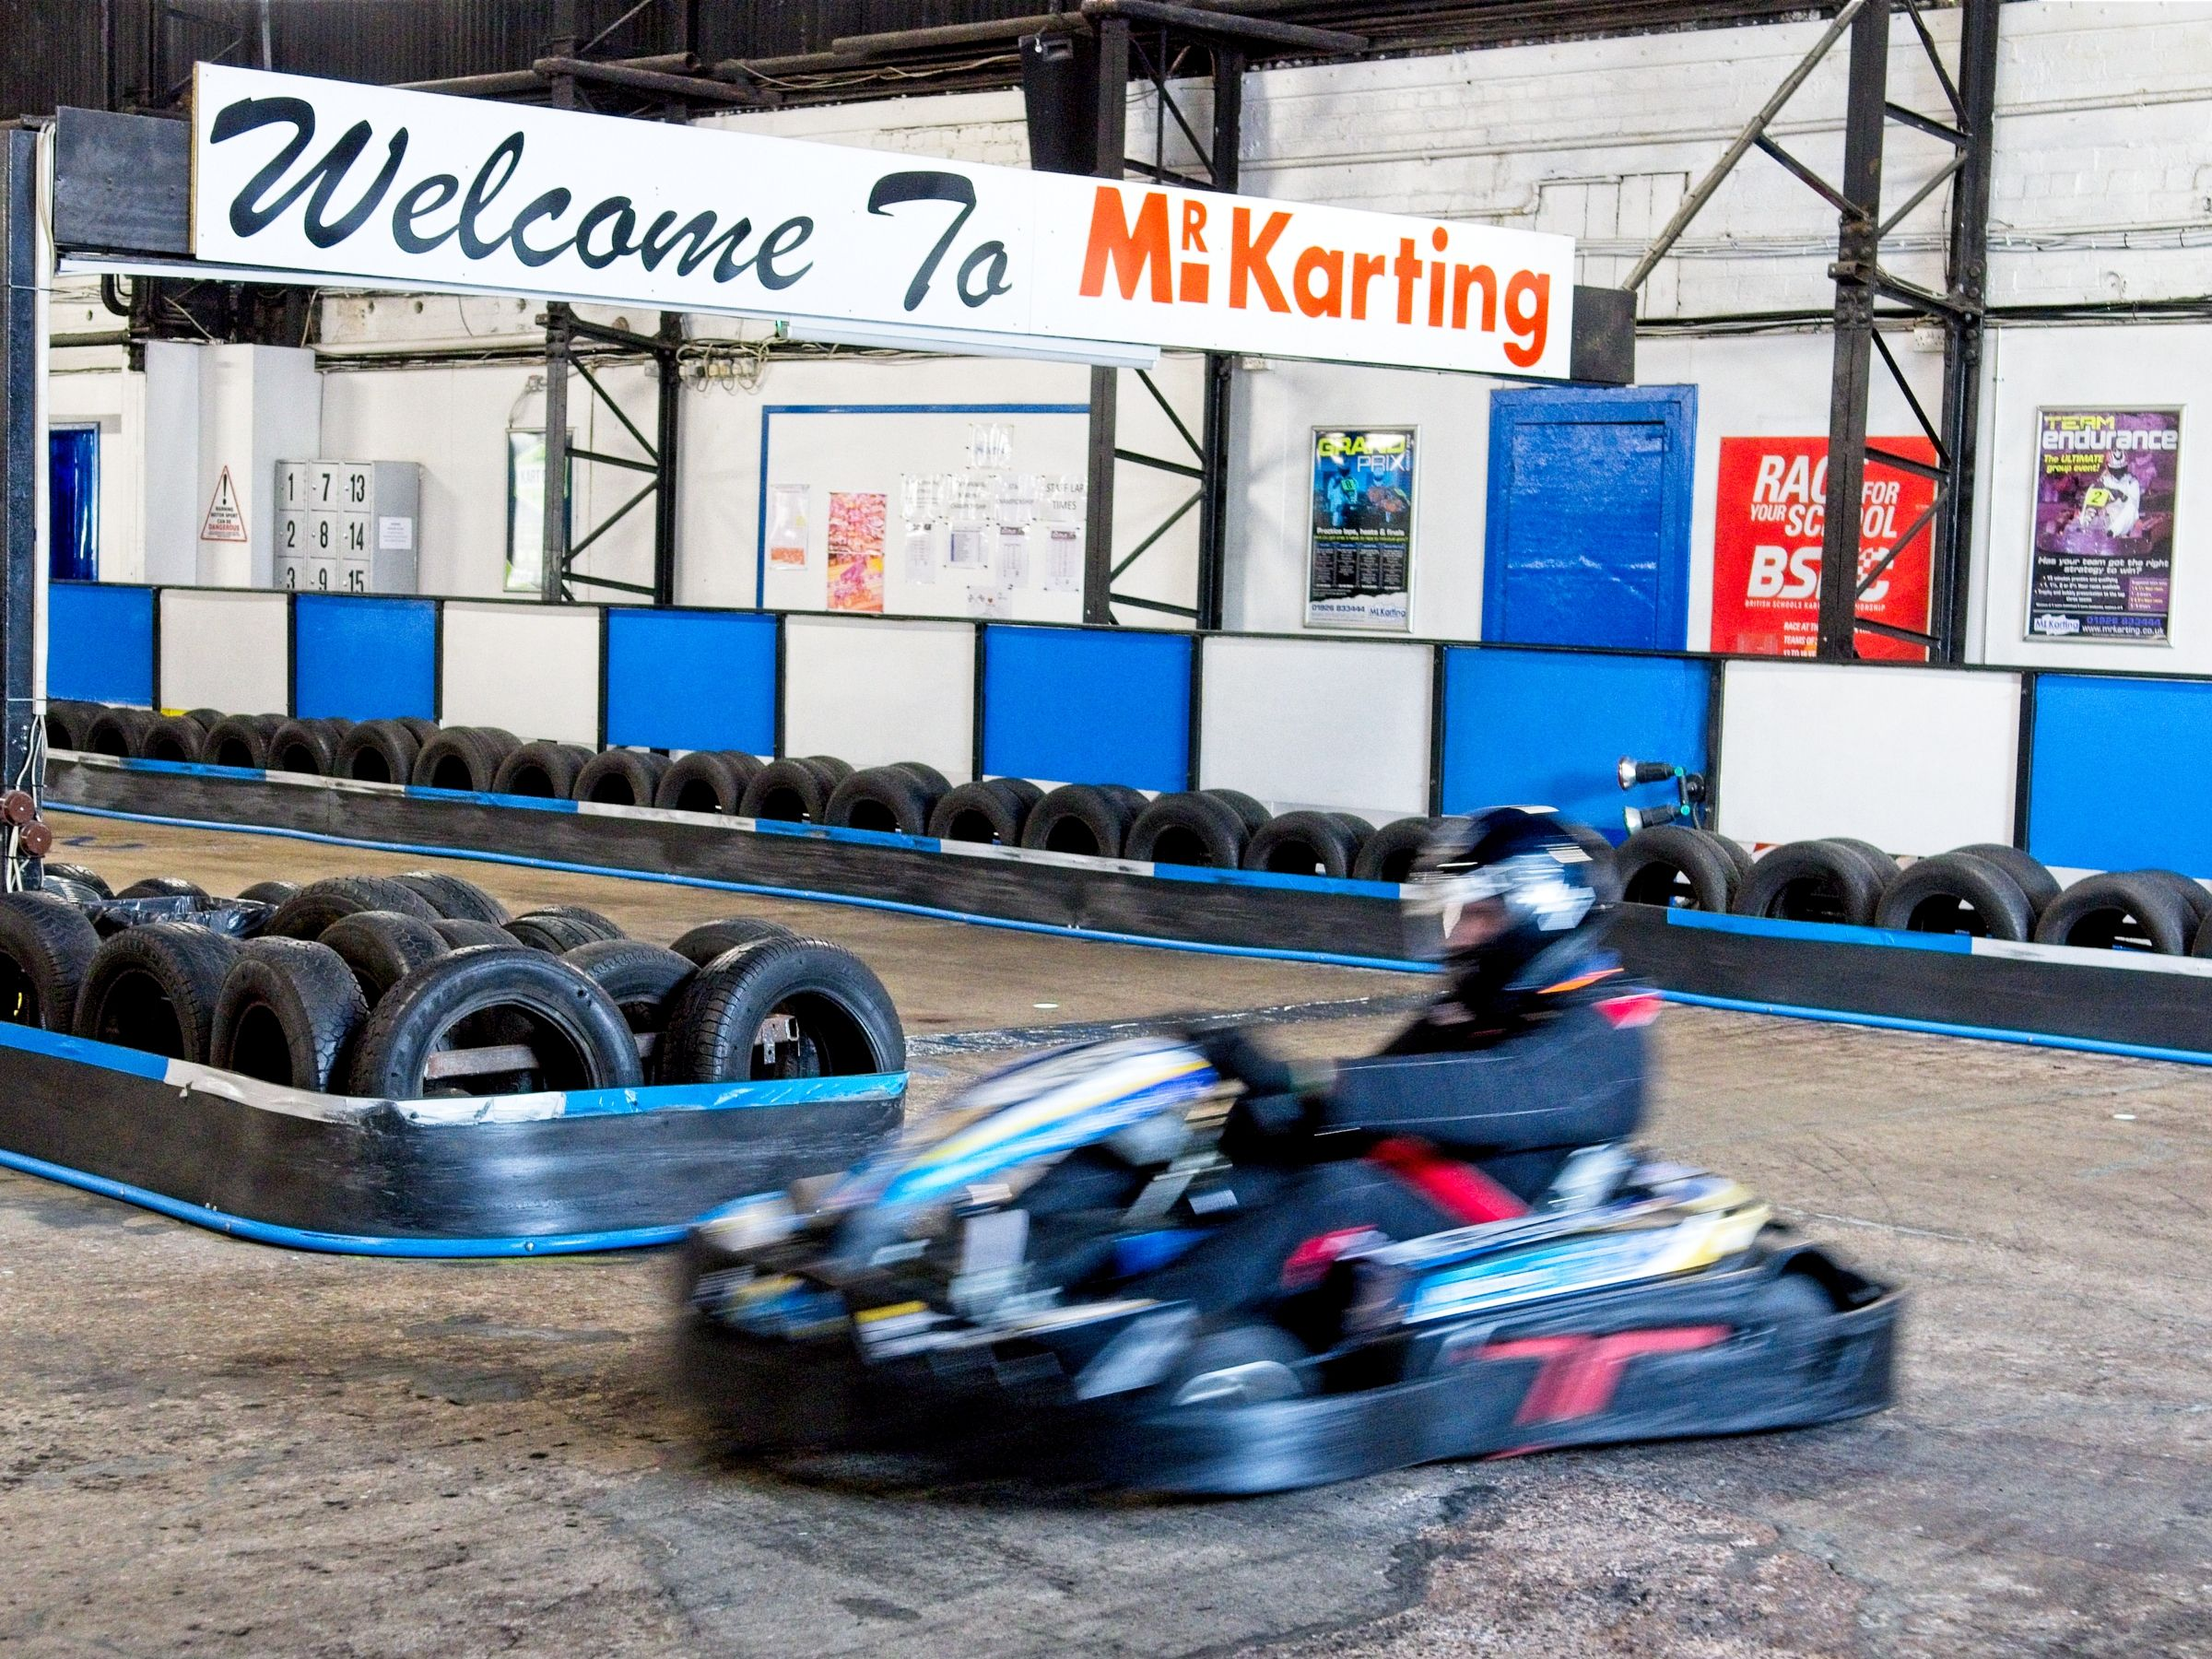 mr karting leamington spa a male driver exiting a bend slightly blurred image showing speed and movement